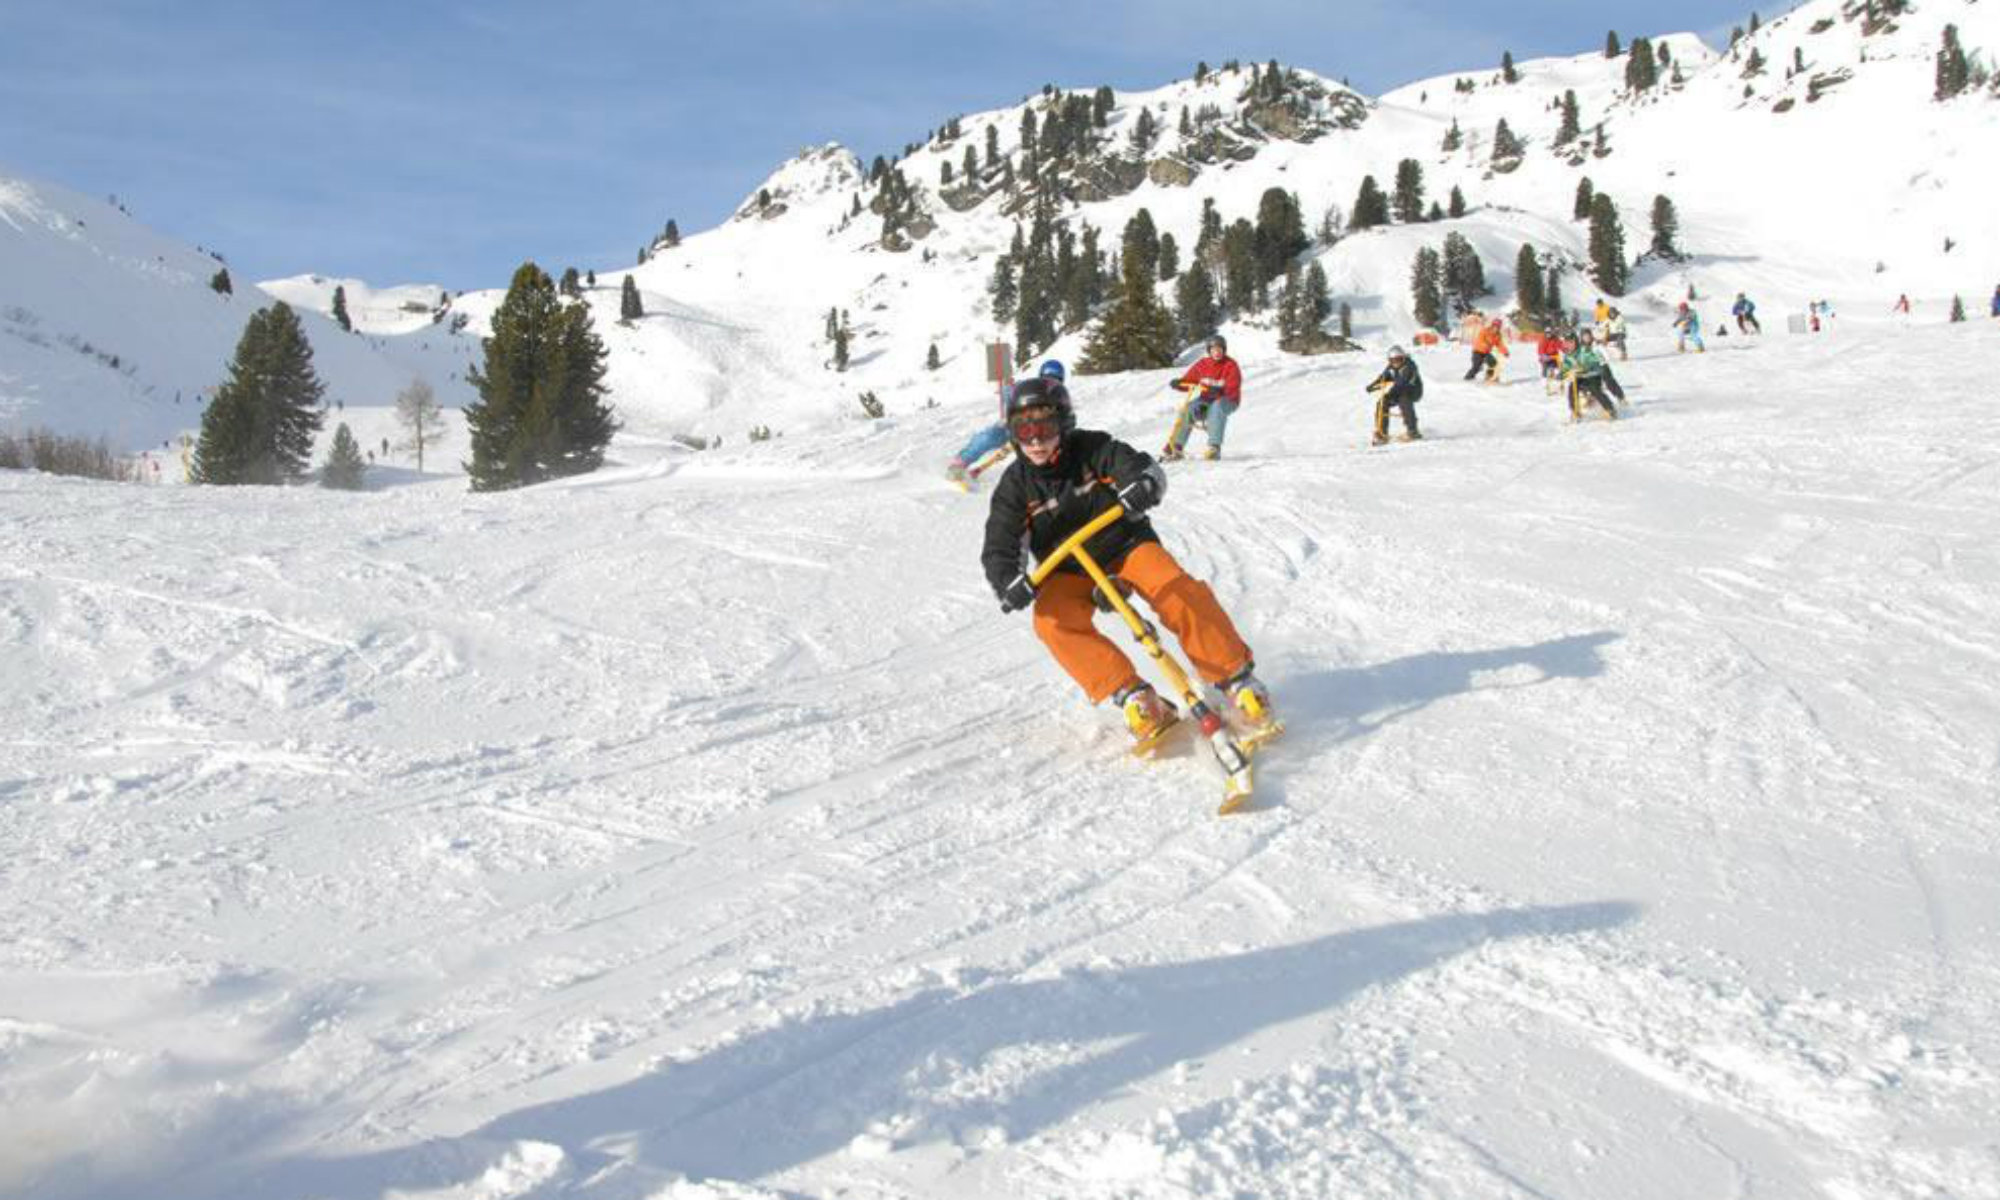 Various snow bikers training their turns on the slope.